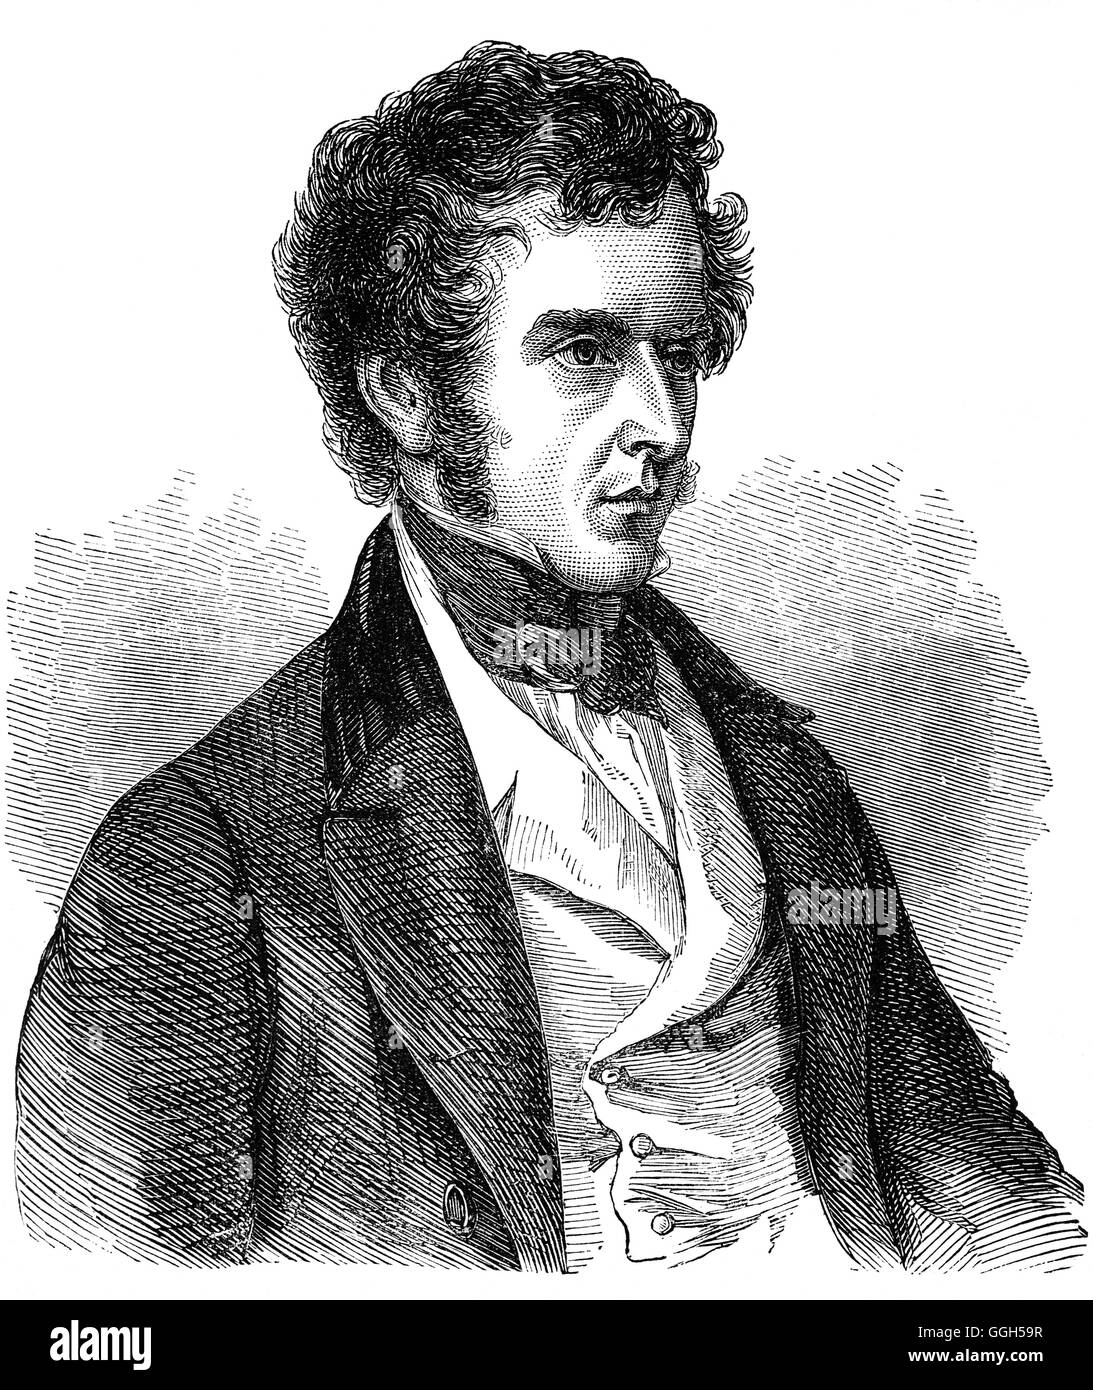 Charles Pelham Villiers (1802 – 1898) was a British lawyer and politician who sat in the House of Commons from 1835 - Stock Image